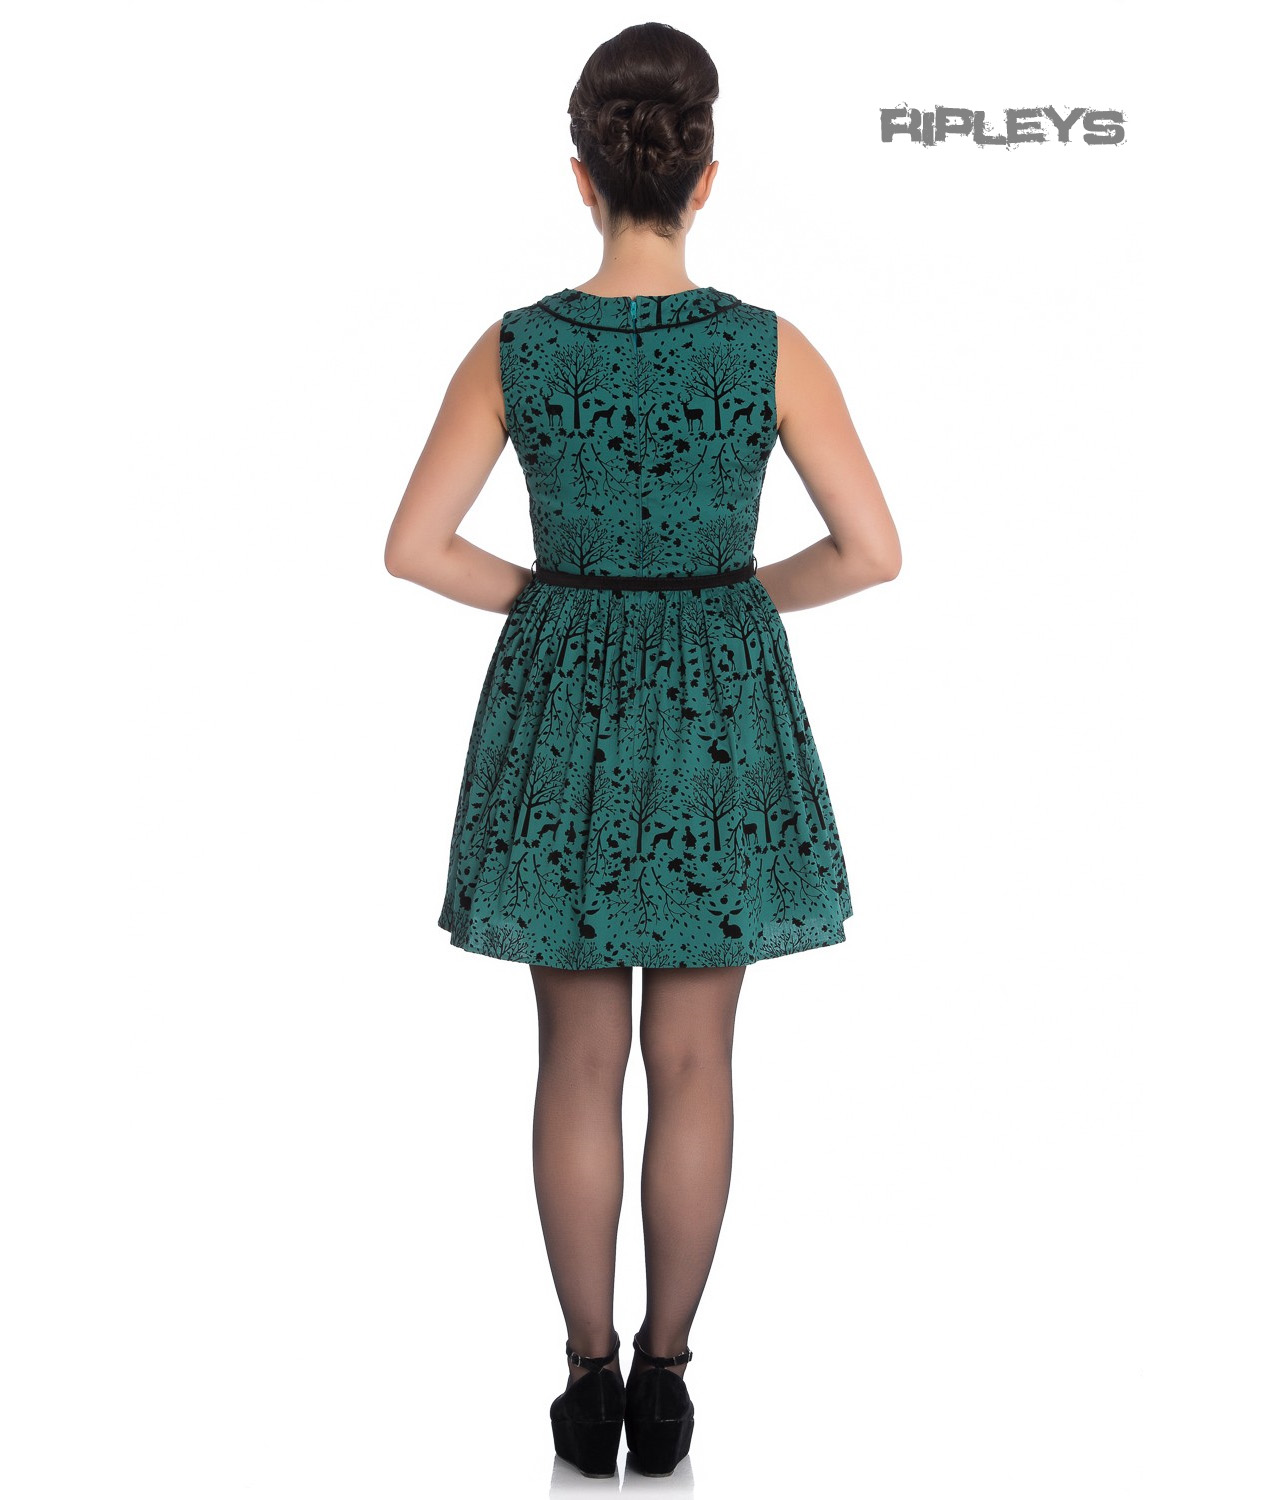 Hell-Bunny-50s-Mini-Skater-Dress-Woodland-Trees-SHERWOOD-Dark-Green-All-Sizes thumbnail 32